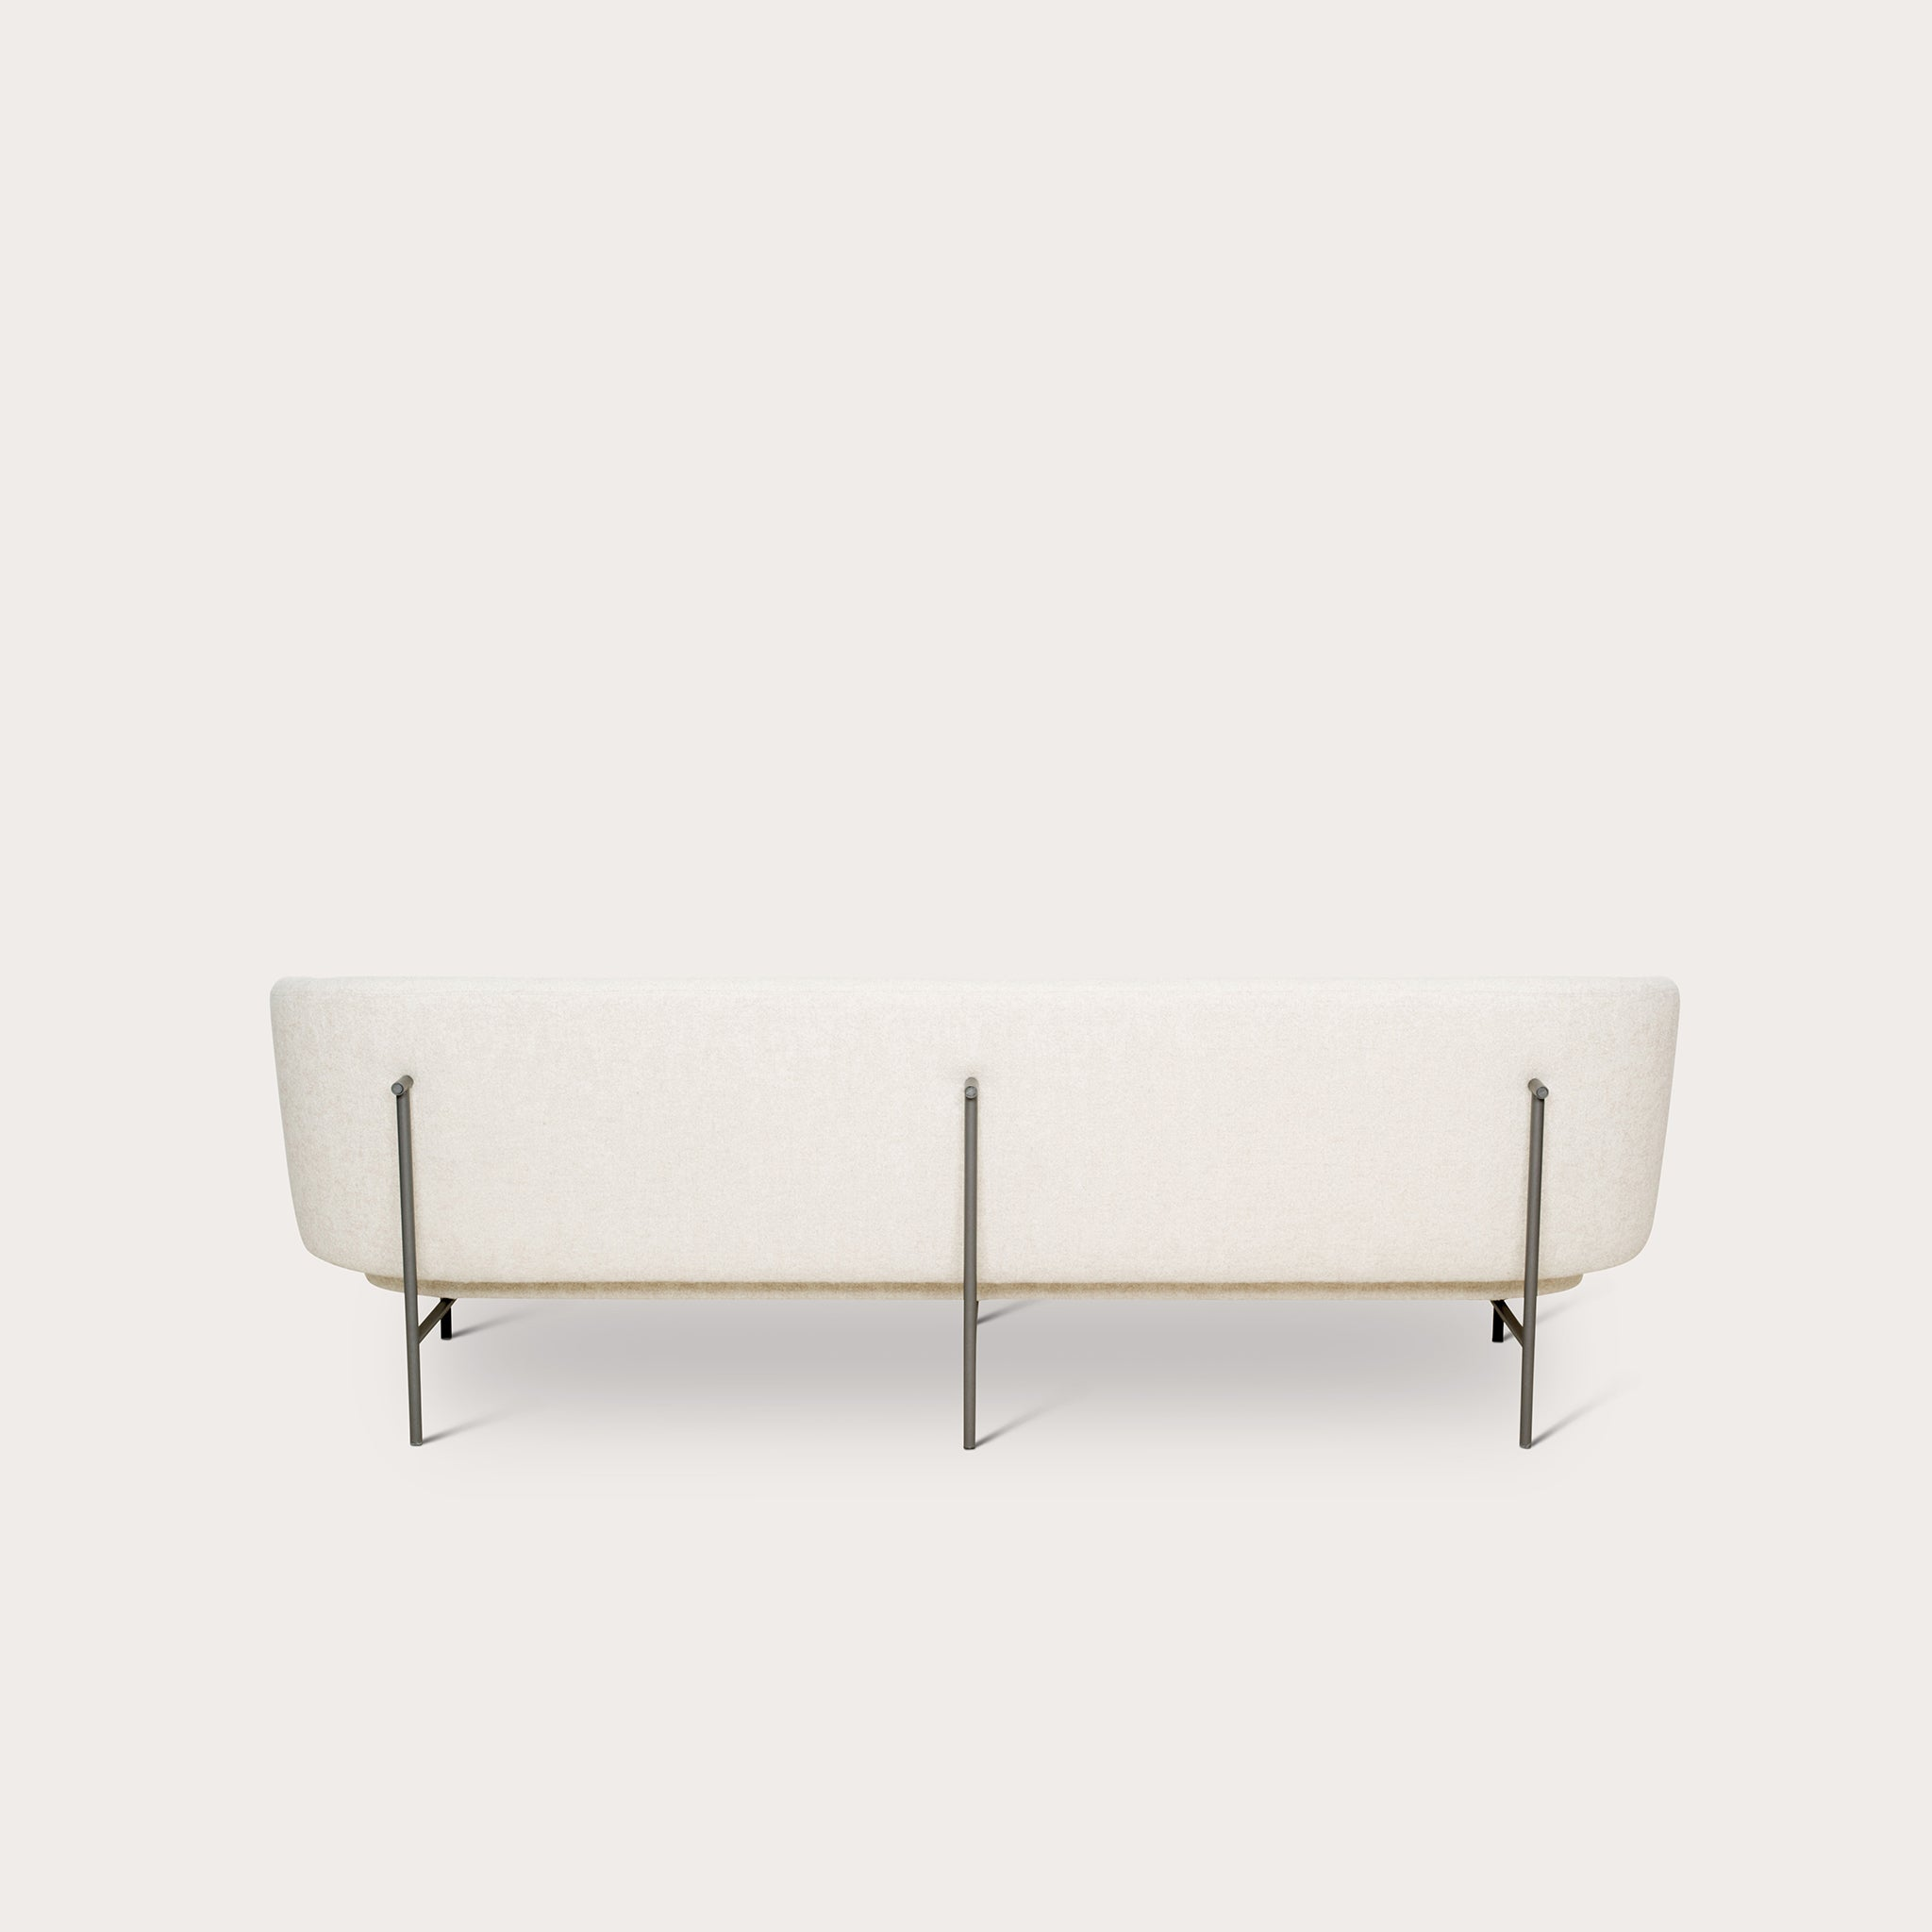 HUG Sofa Seating Christophe Delcourt Designer Furniture Sku: 008-240-10118